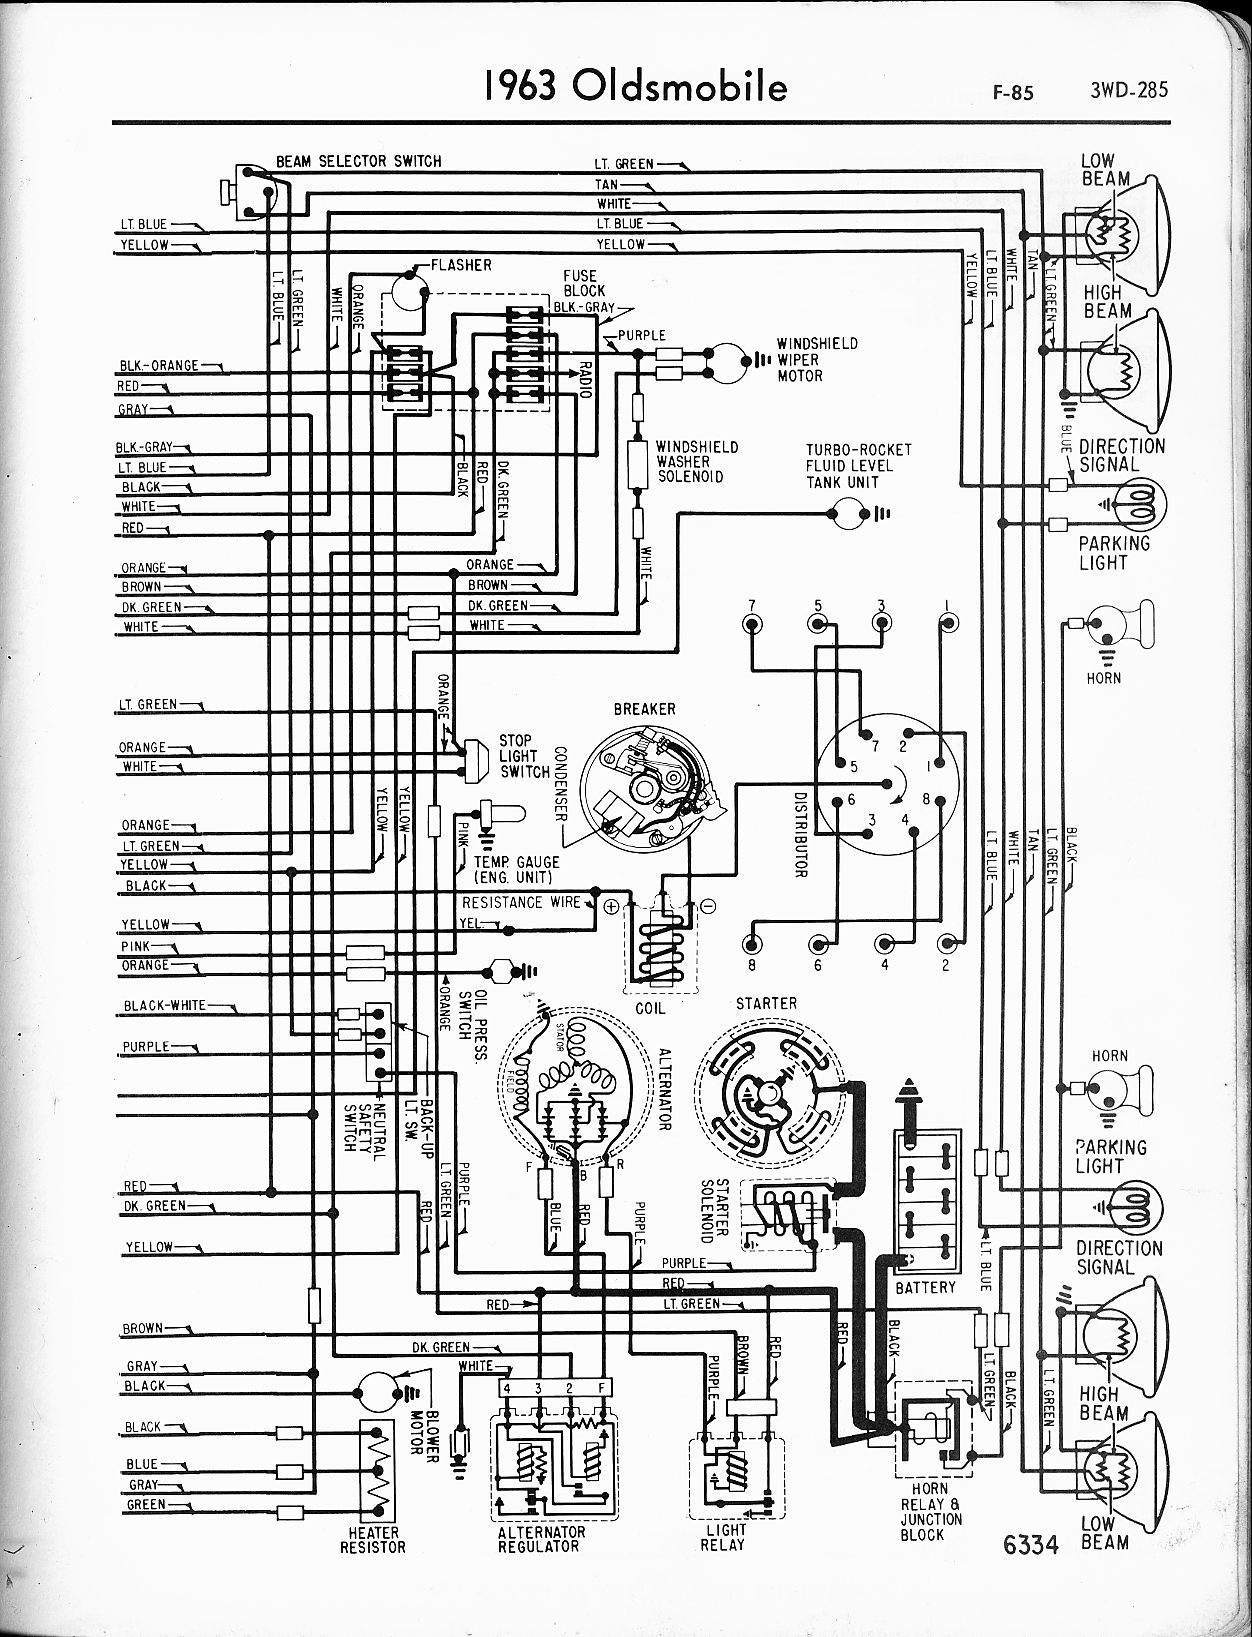 MWire5765 285 oldsmobile wiring diagrams the old car manual project  at edmiracle.co